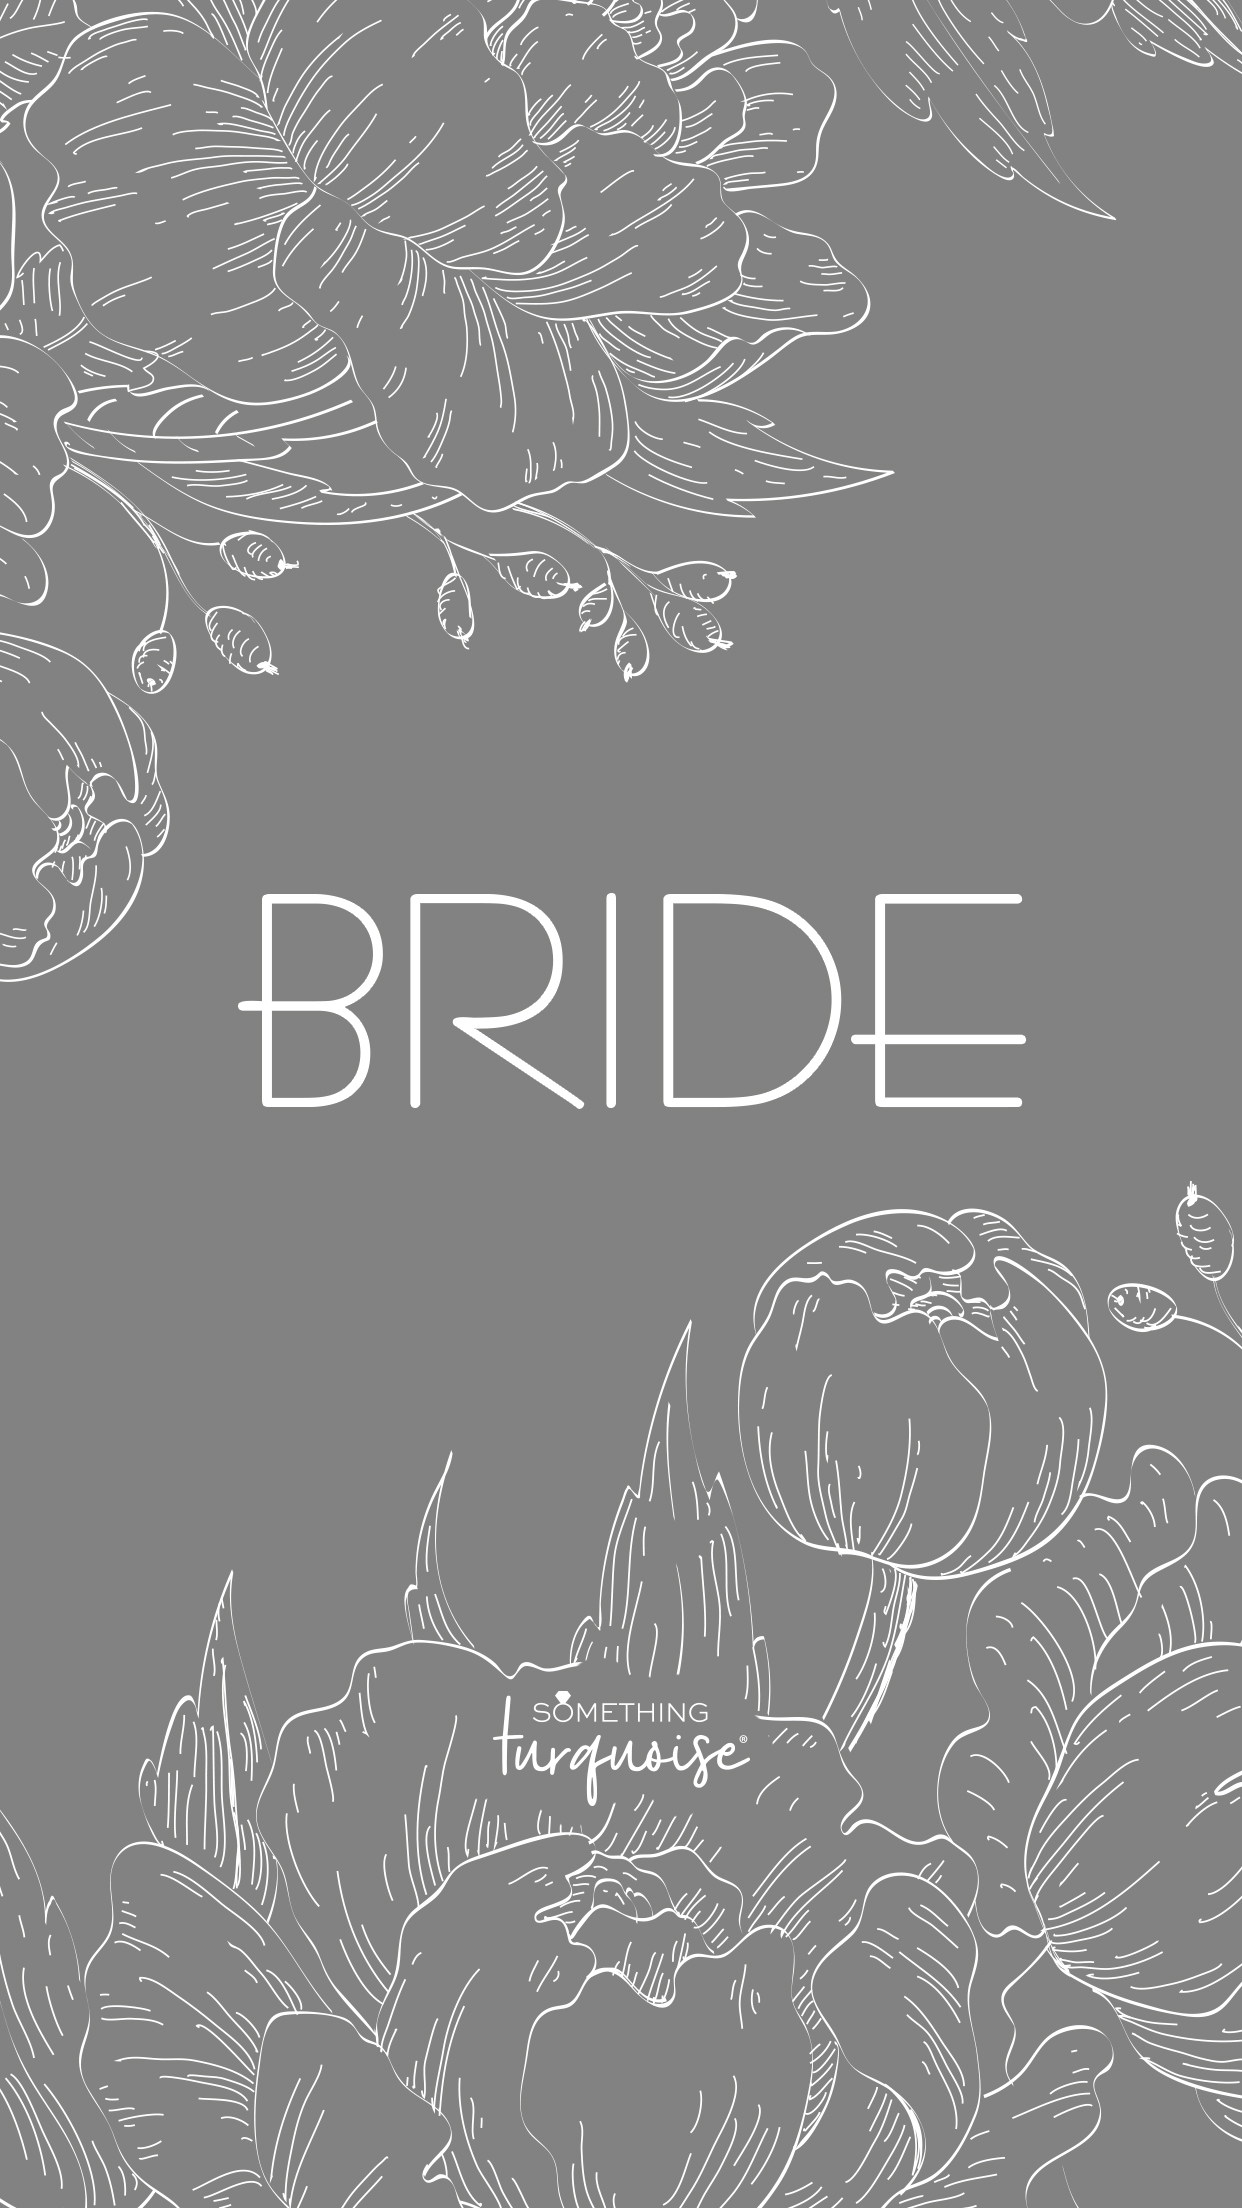 Free floral phone wallpaper for the Bride!